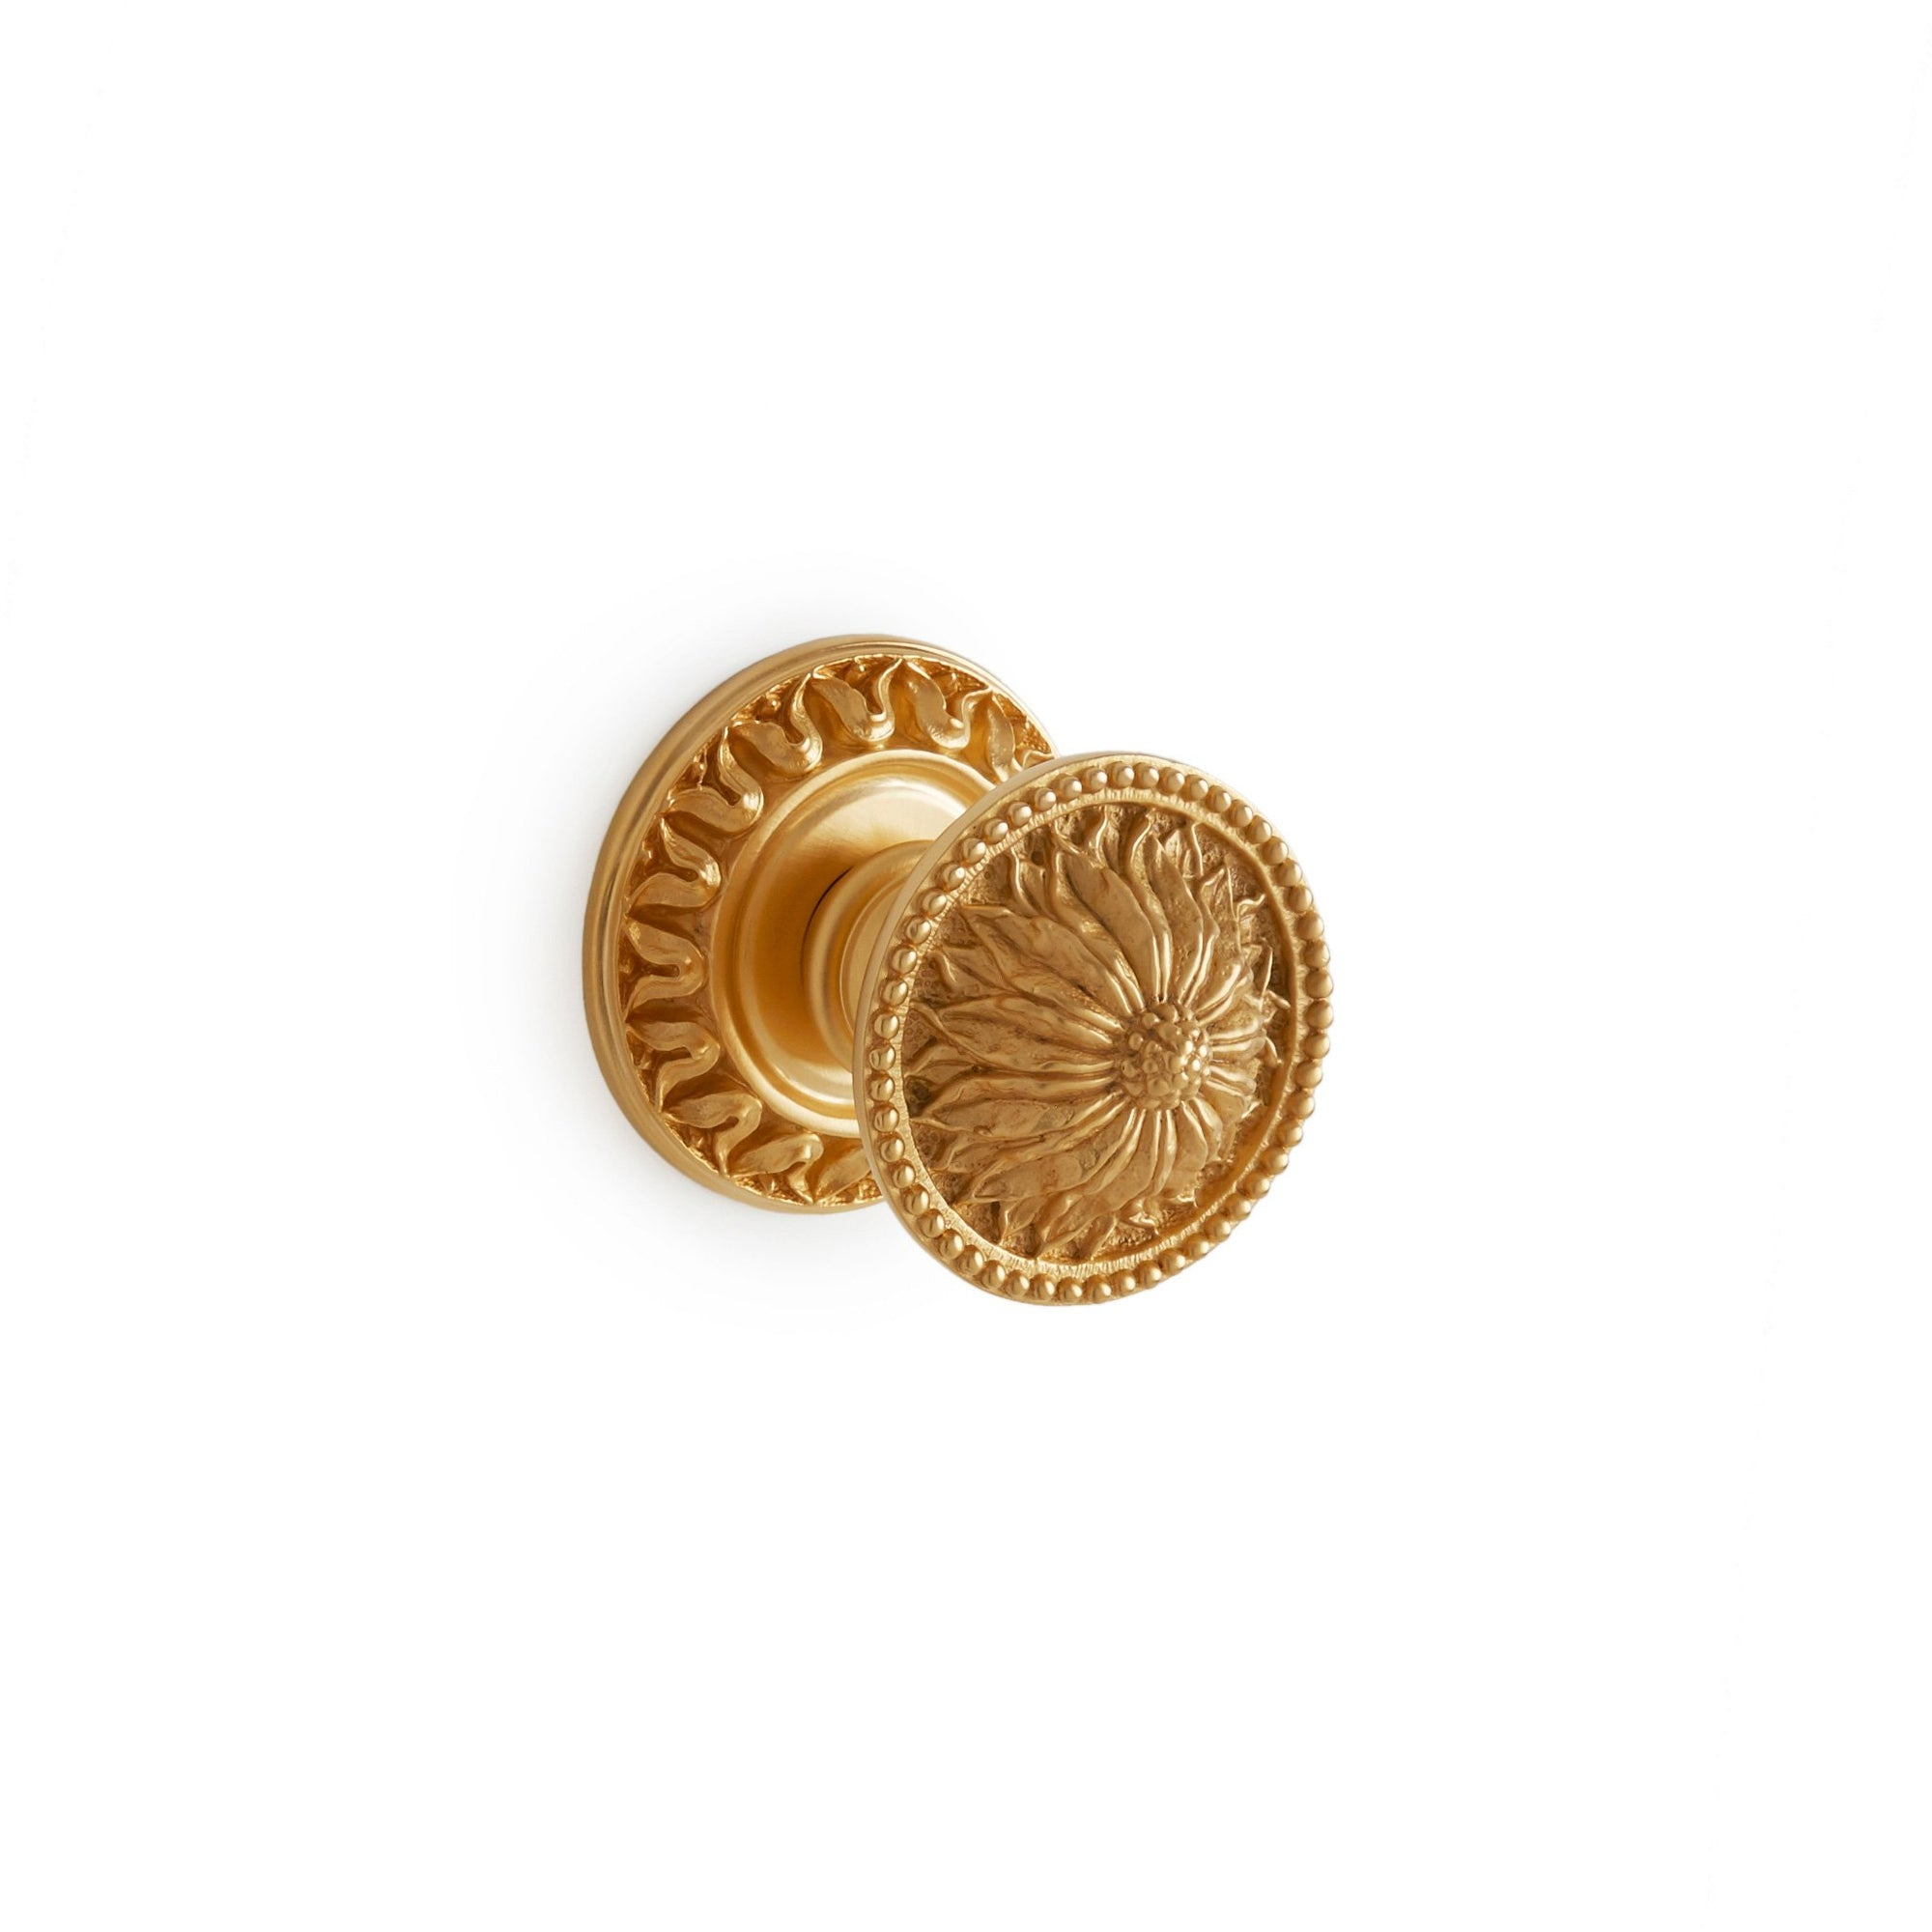 0077DOR-GP Sherle Wagner International Acanthus Door Knob in Gold Plate metal finish